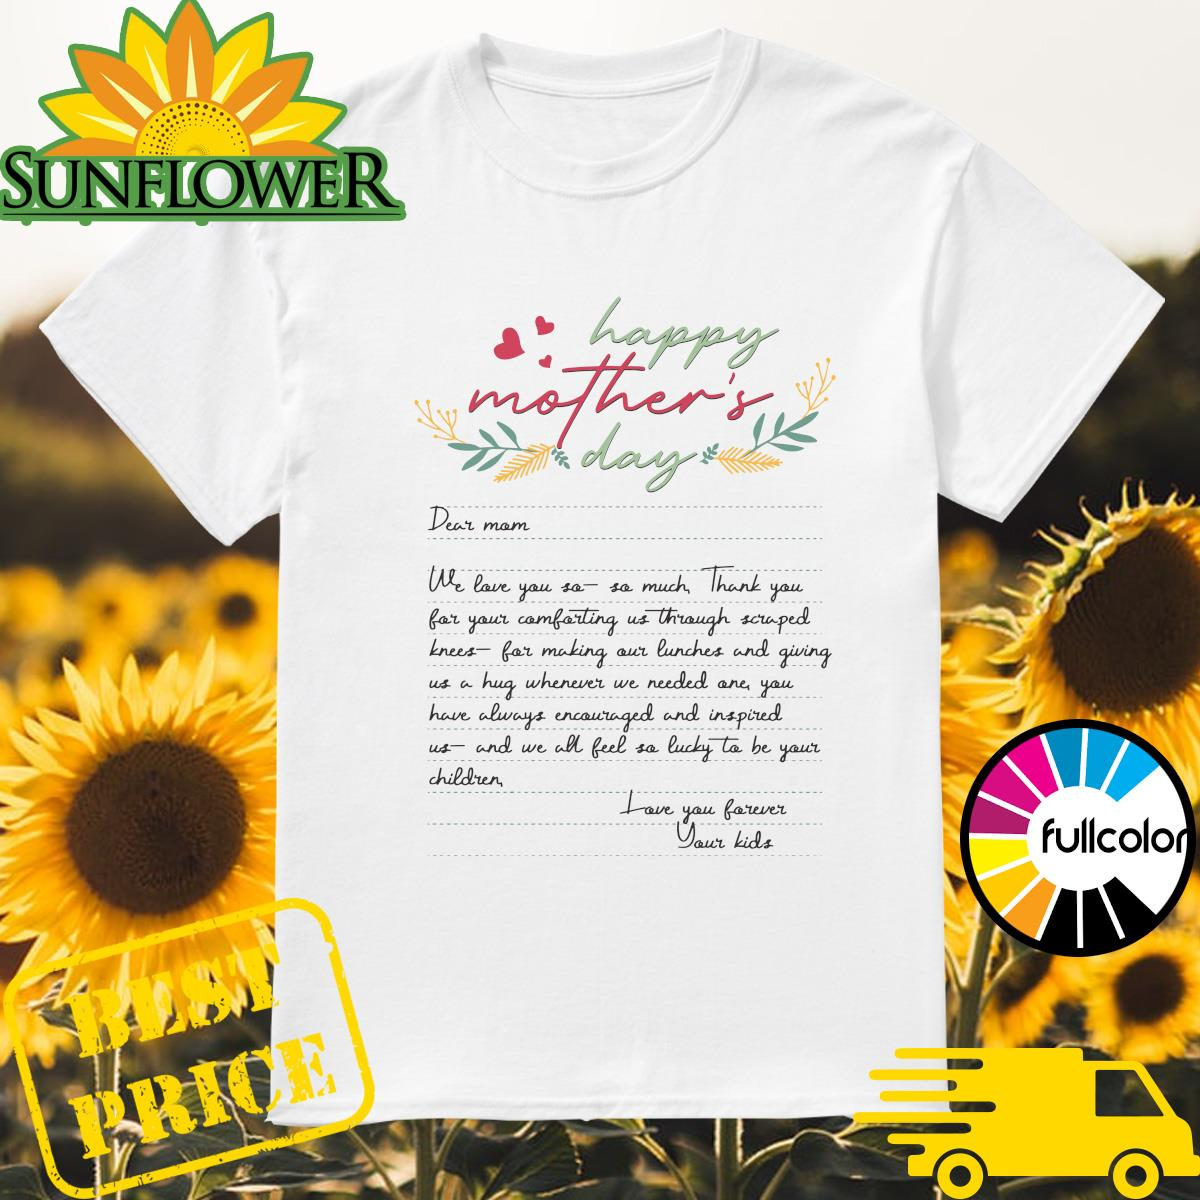 Letters From Mother Happy Mother's Day 2021 Shirt